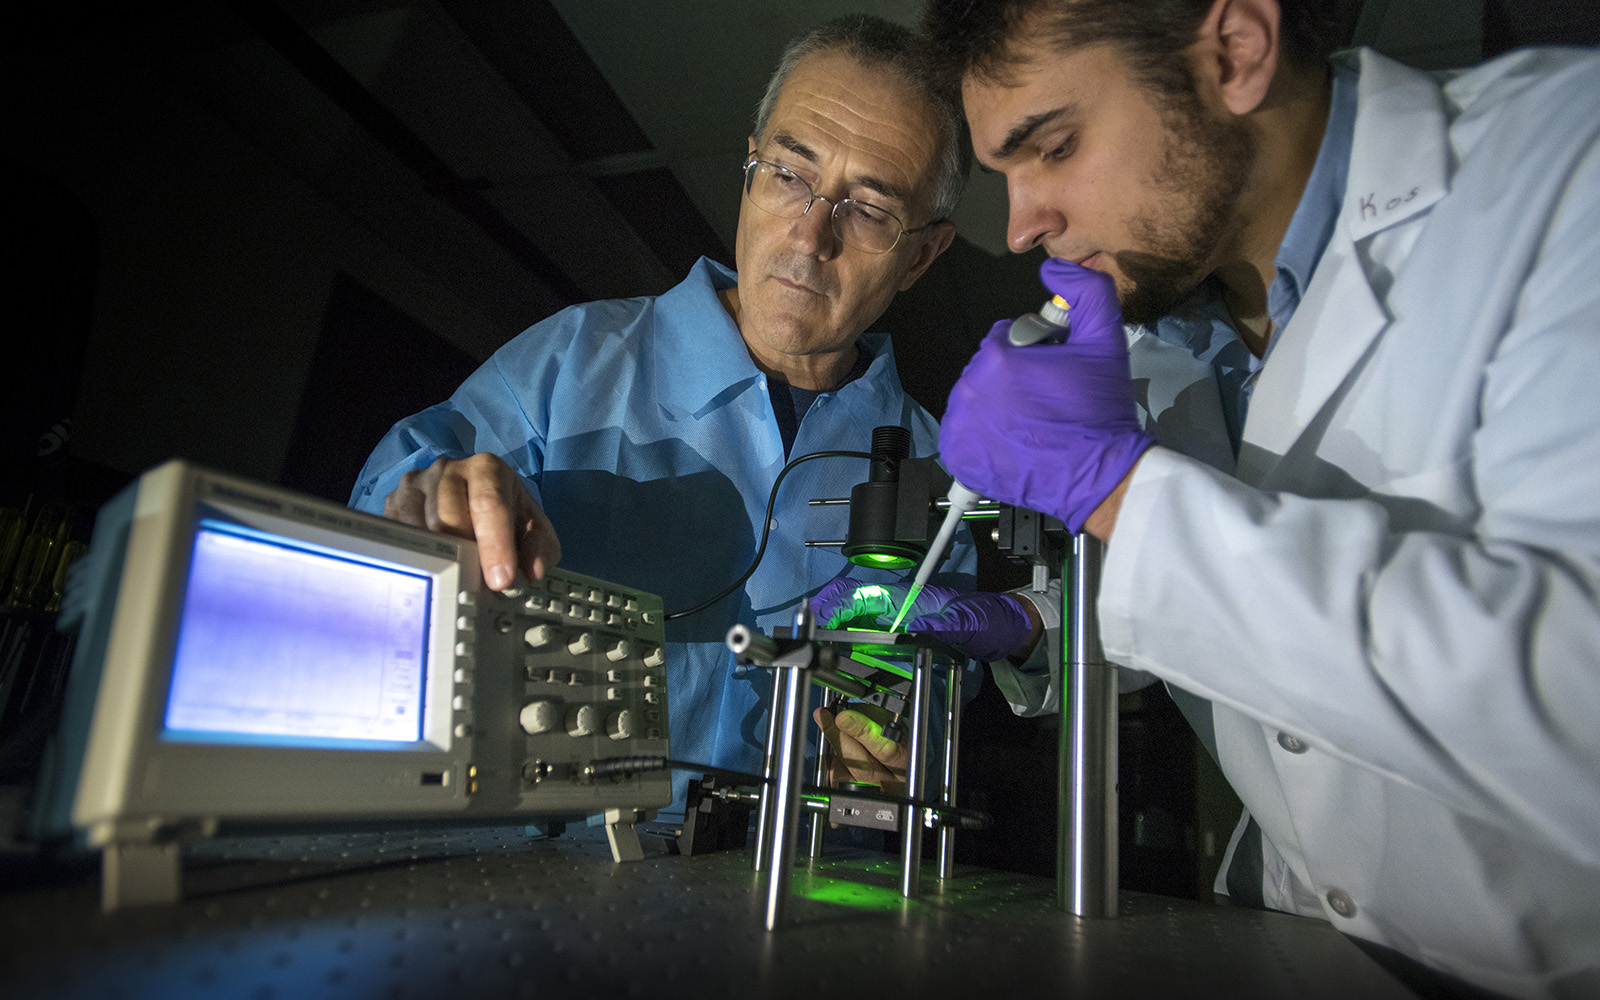 UConn engineering researchers George Lykotrafitis, left, and graduate student Kostyantyn Partola have developed a device to test an important indicator of heart health that is often ignored – blood viscosity. Here they are demonstrating the device, known as a whole blood rheometer. (Sean Flynn/UConn Photo)